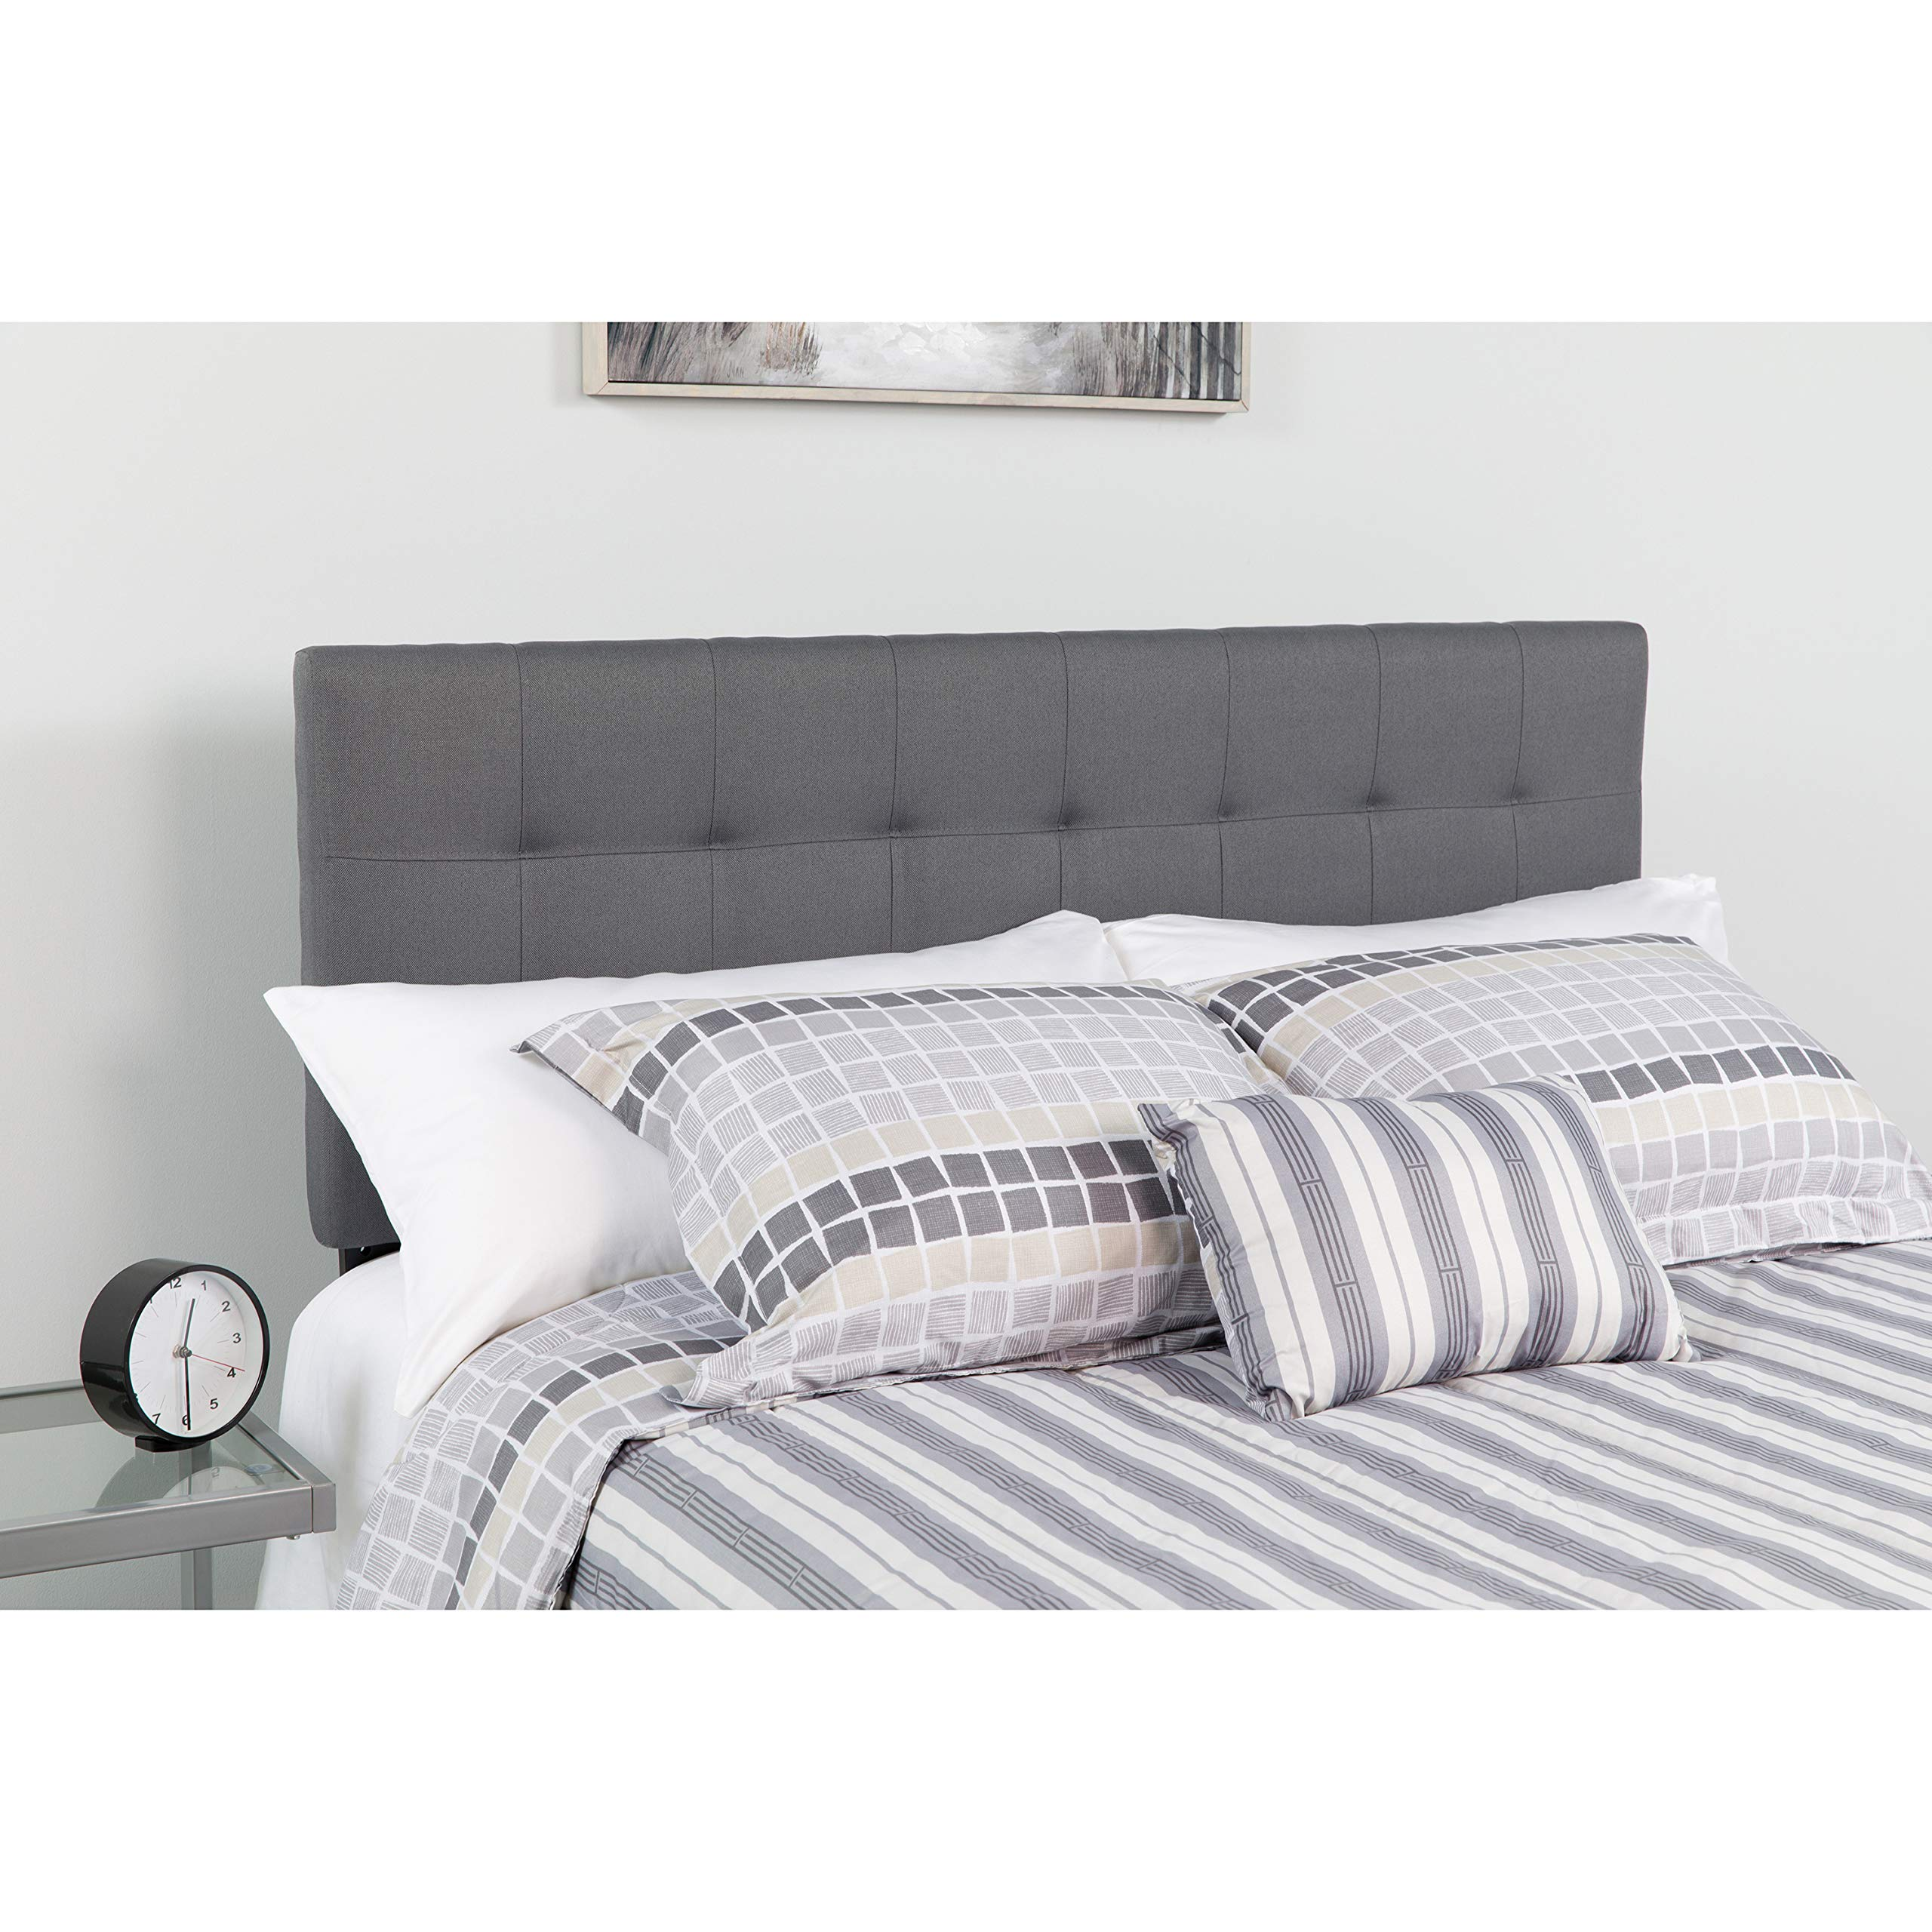 Flash Furniture Bedford Tufted Upholstered King Size Headboard in Dark Gray Fabric by Flash Furniture